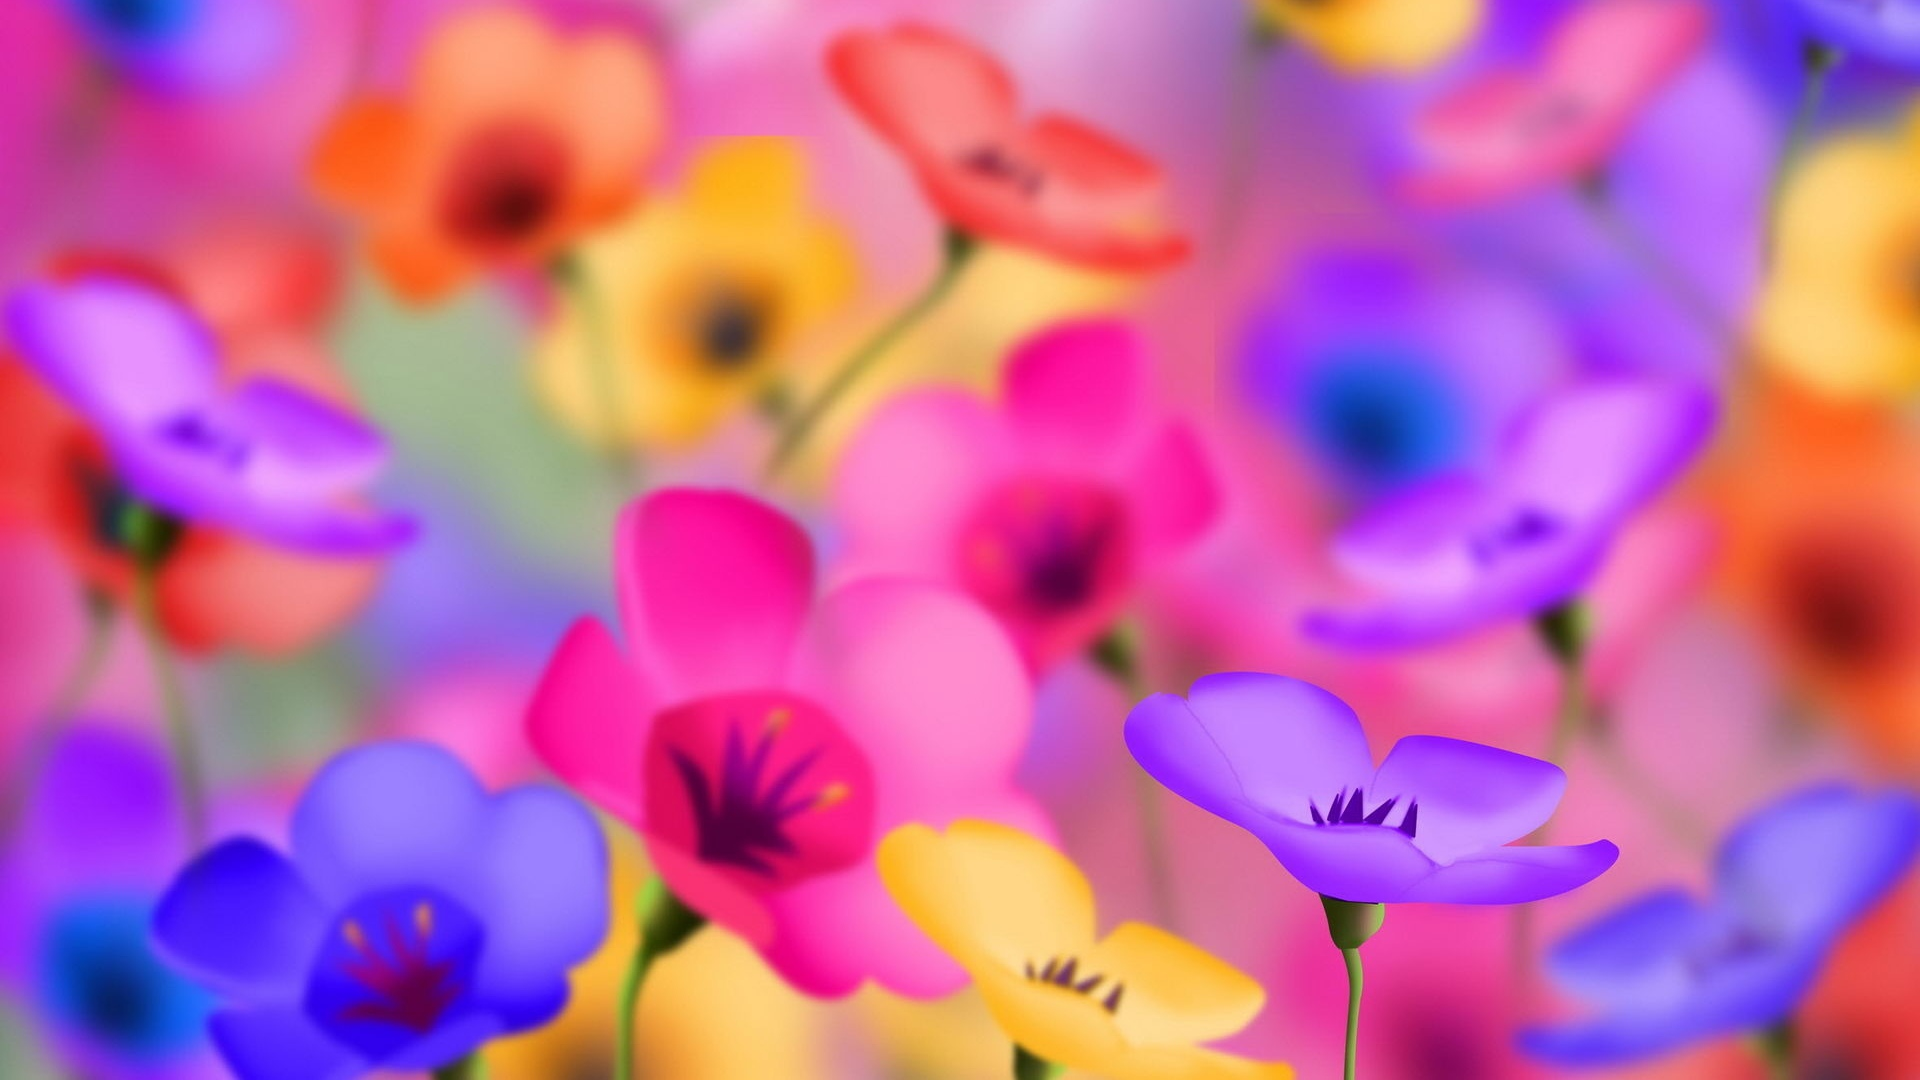 Bright Colored Flowers wallpaper | 1920x1080 | #66302